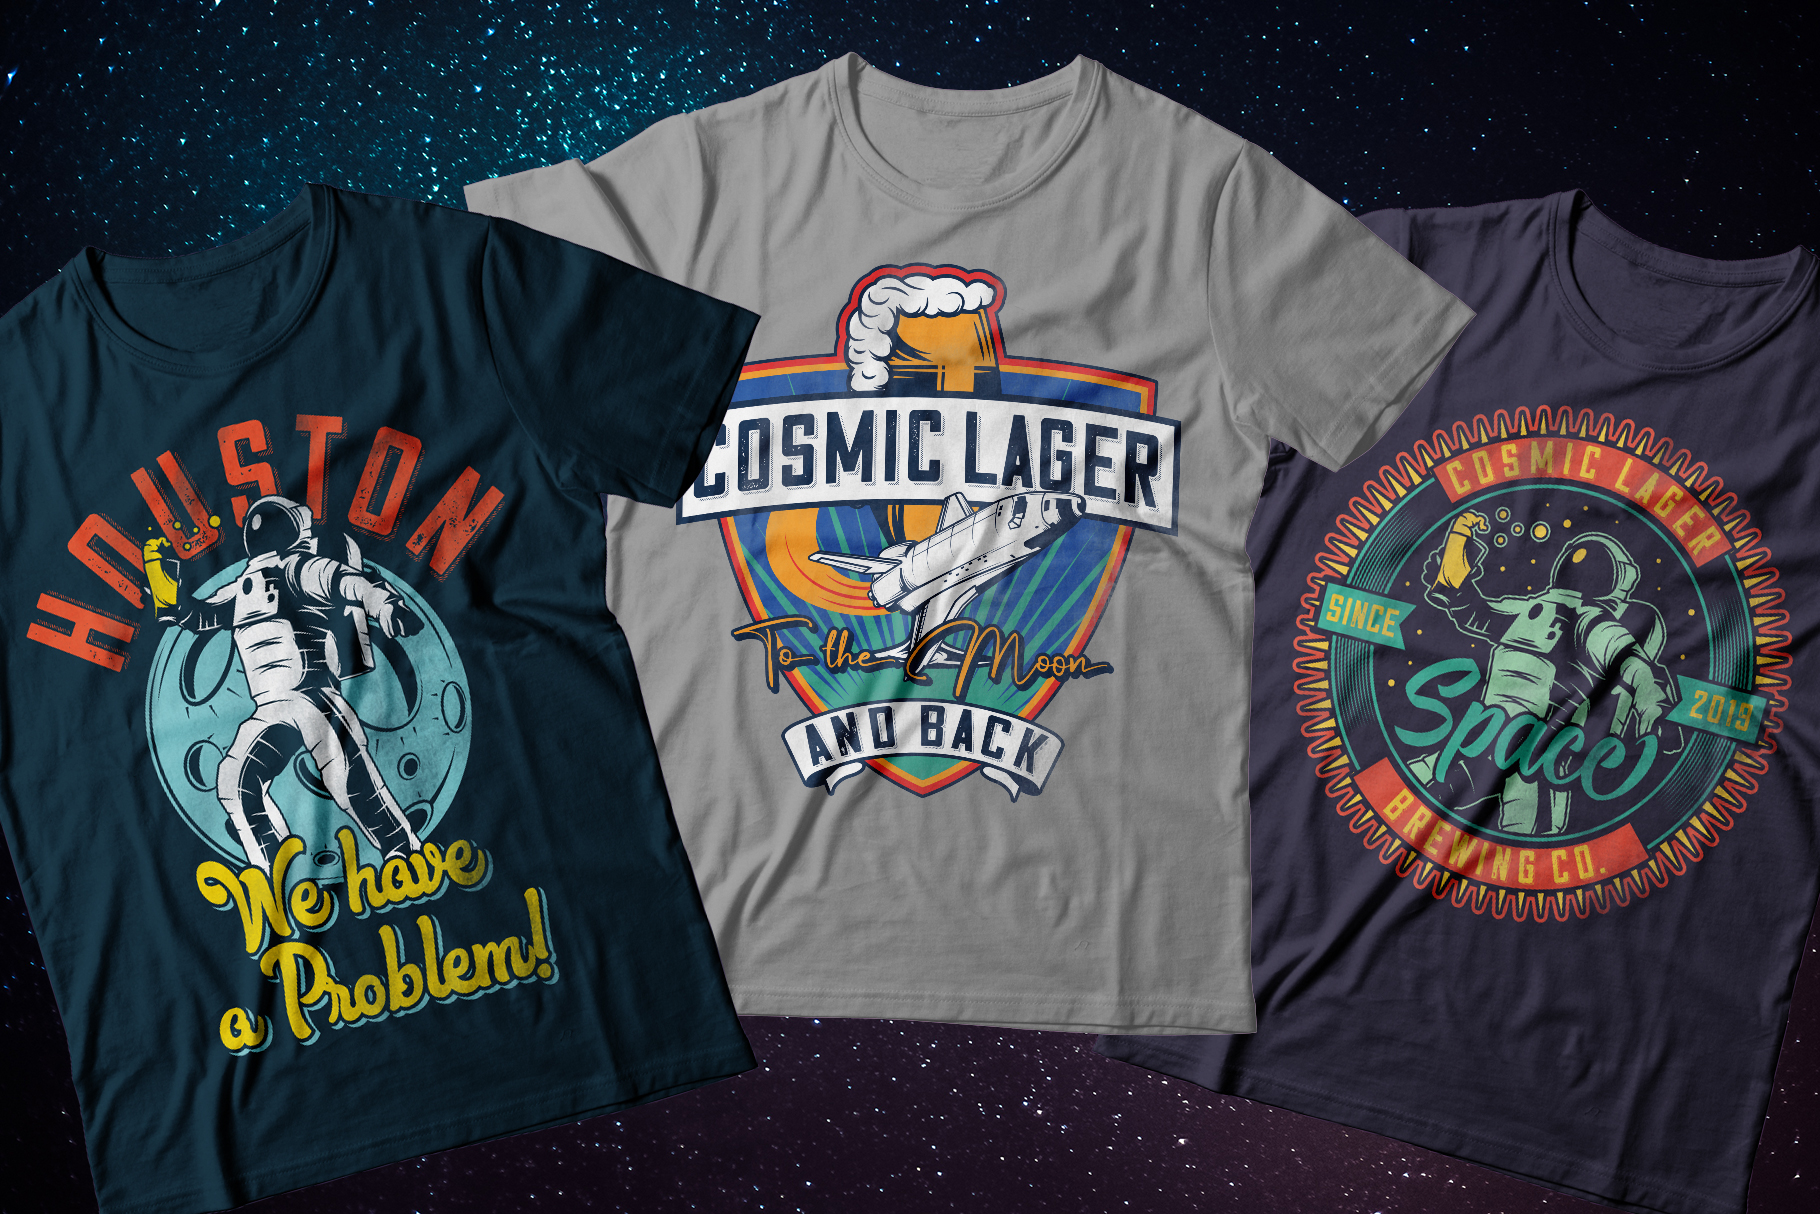 Cosmic Lager with bonus example image 6